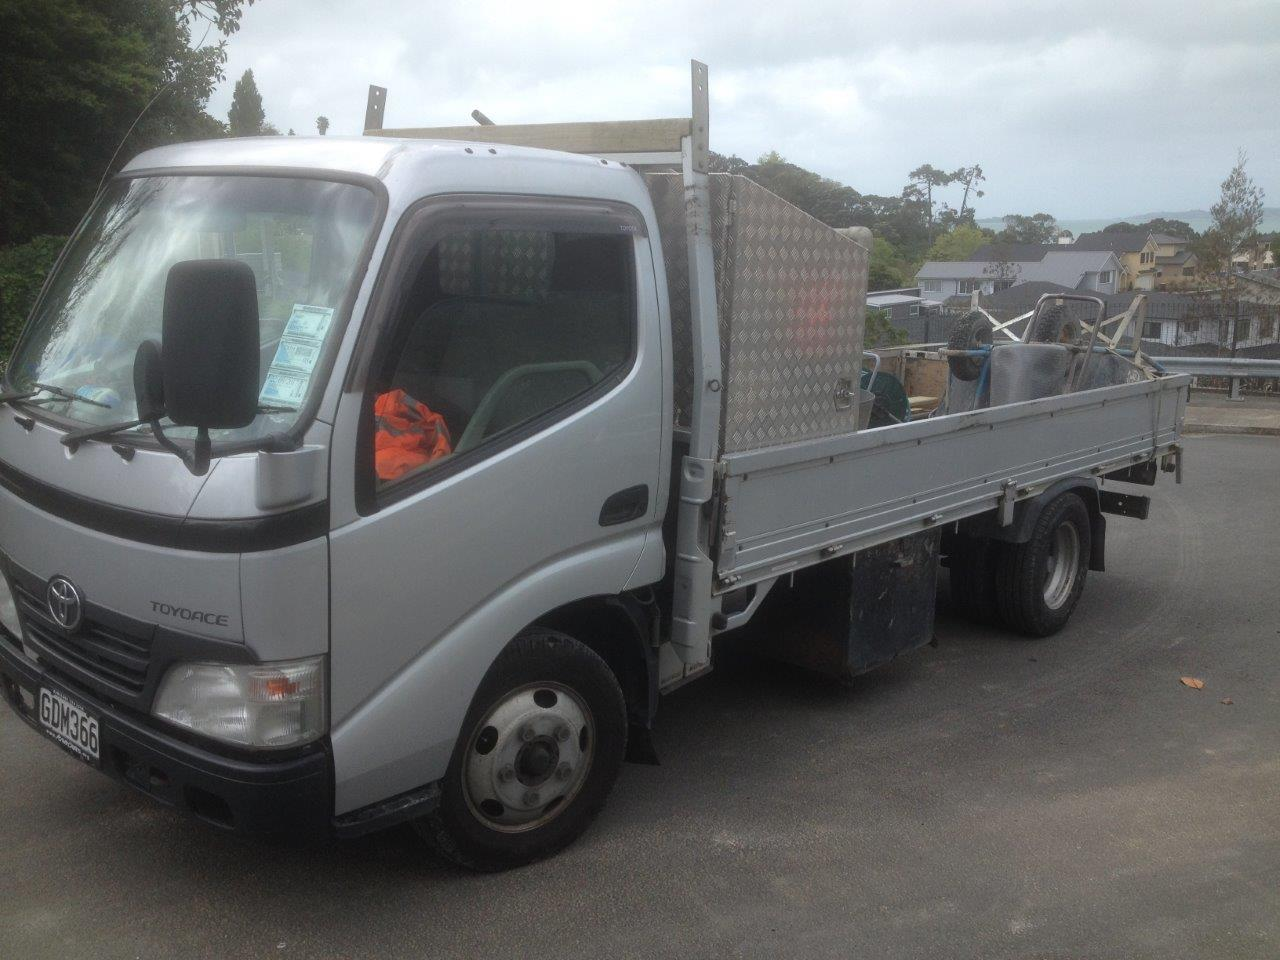 Concrete Contracting Business for Sale Auckland